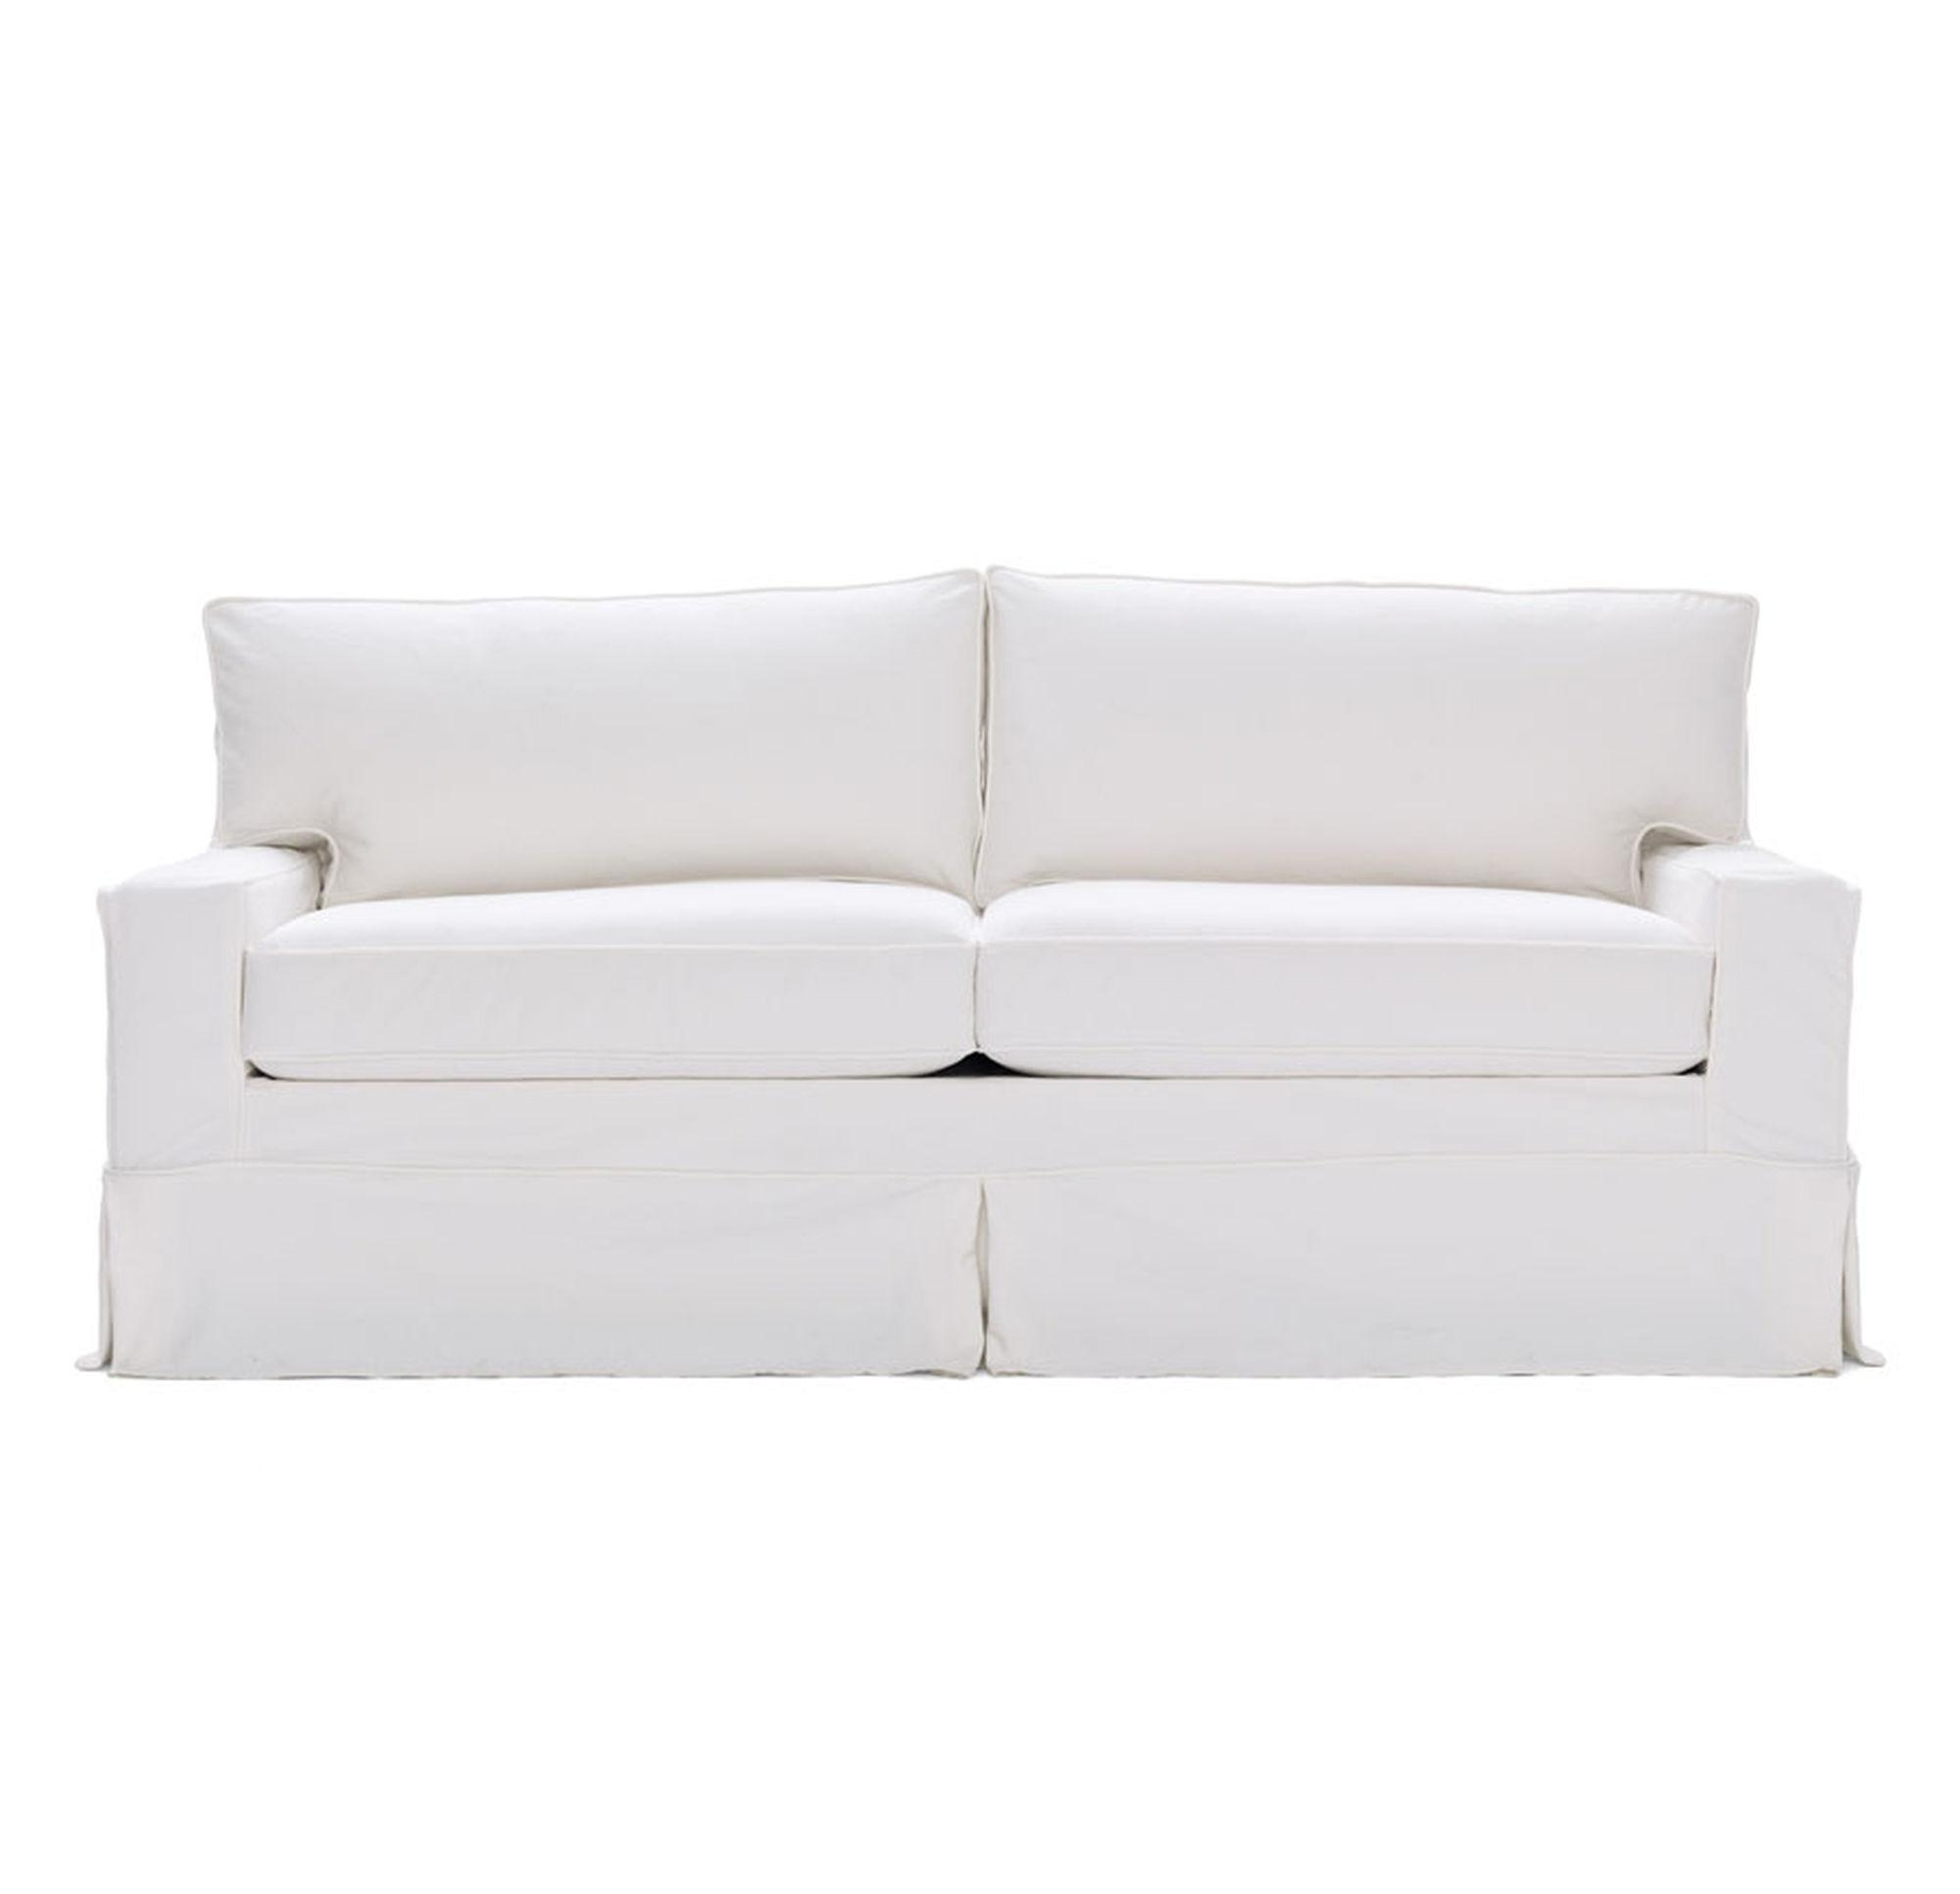 Queen Size Sleeper Sofa Slipcover | Tehranmix Decoration Regarding Slipcovers For Sleeper Sofas (Image 8 of 20)